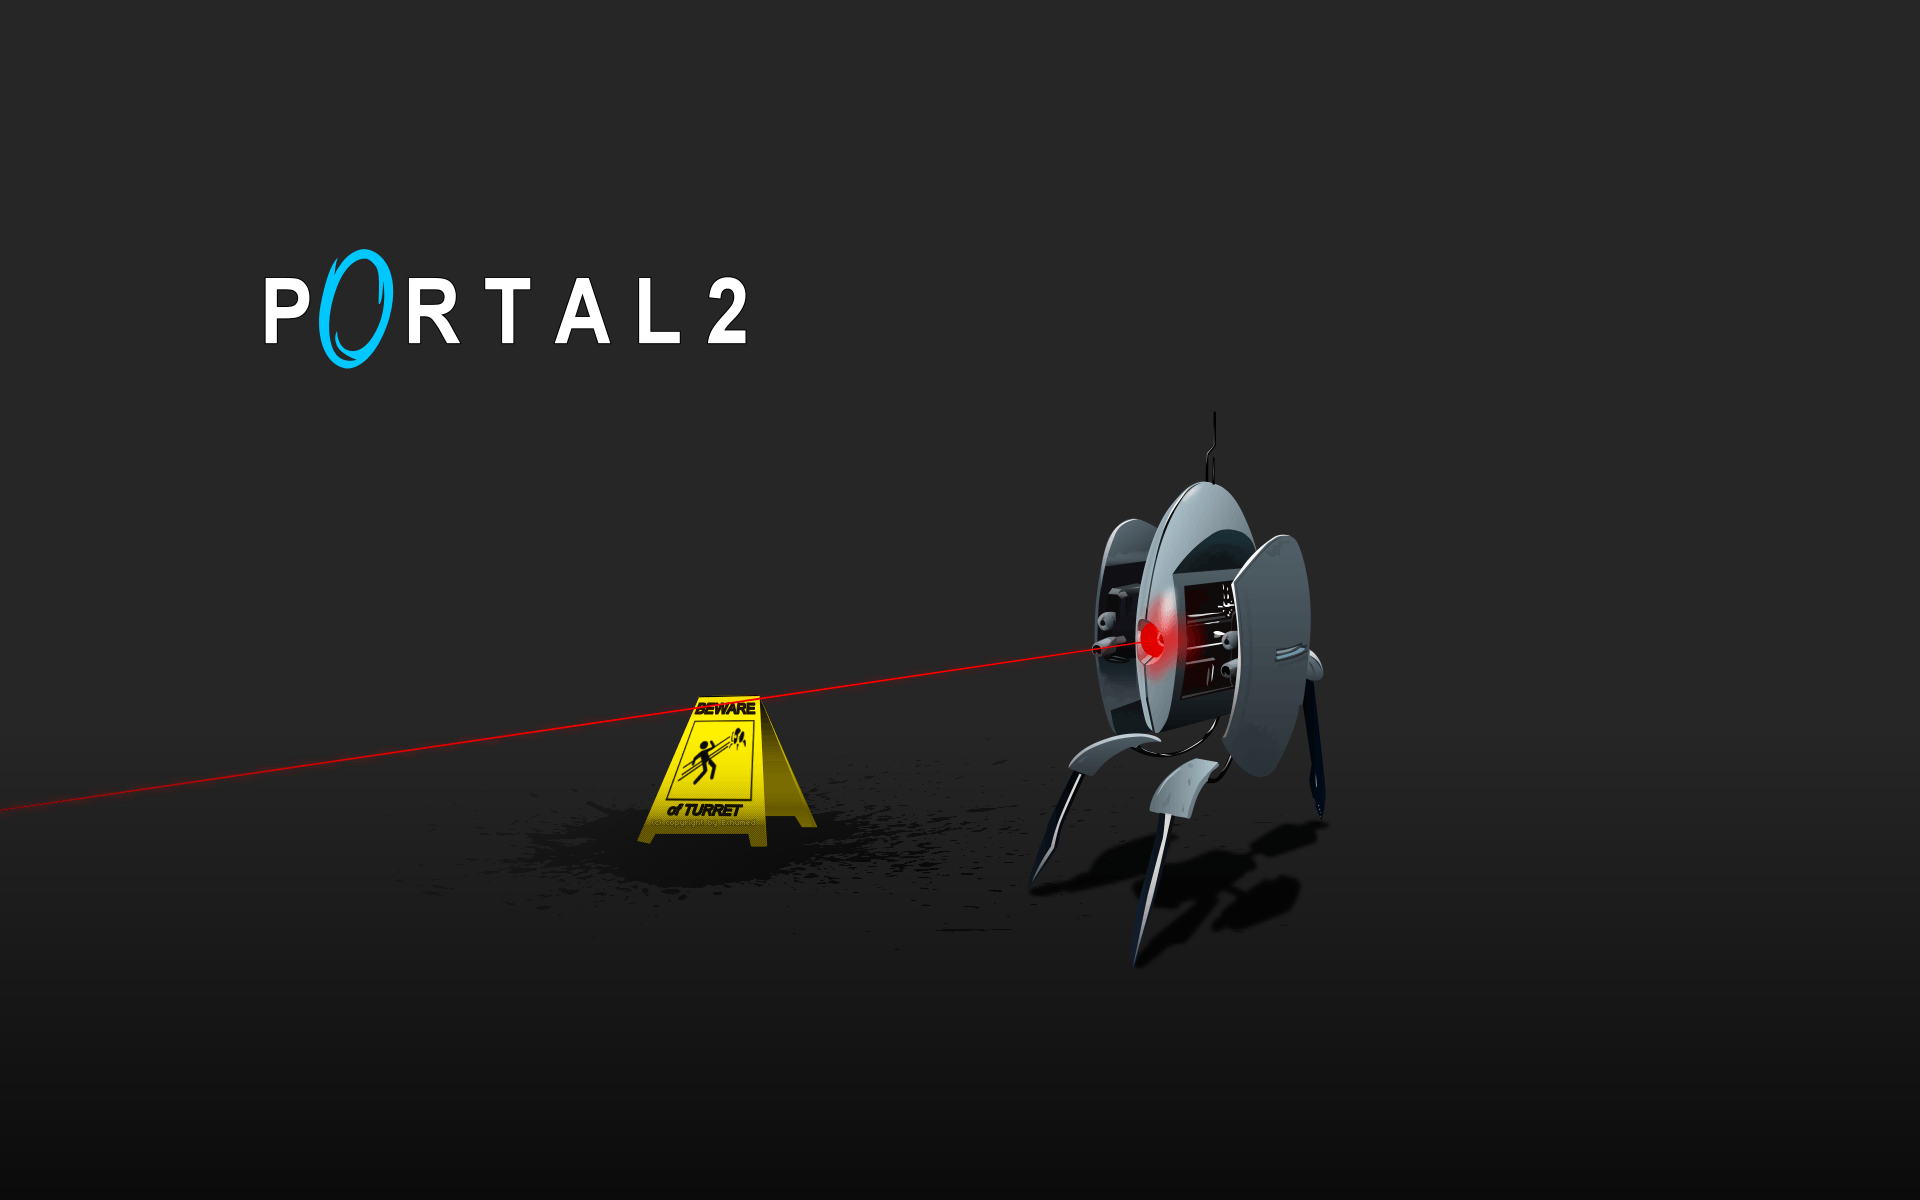 portal 2 wallpaper hd